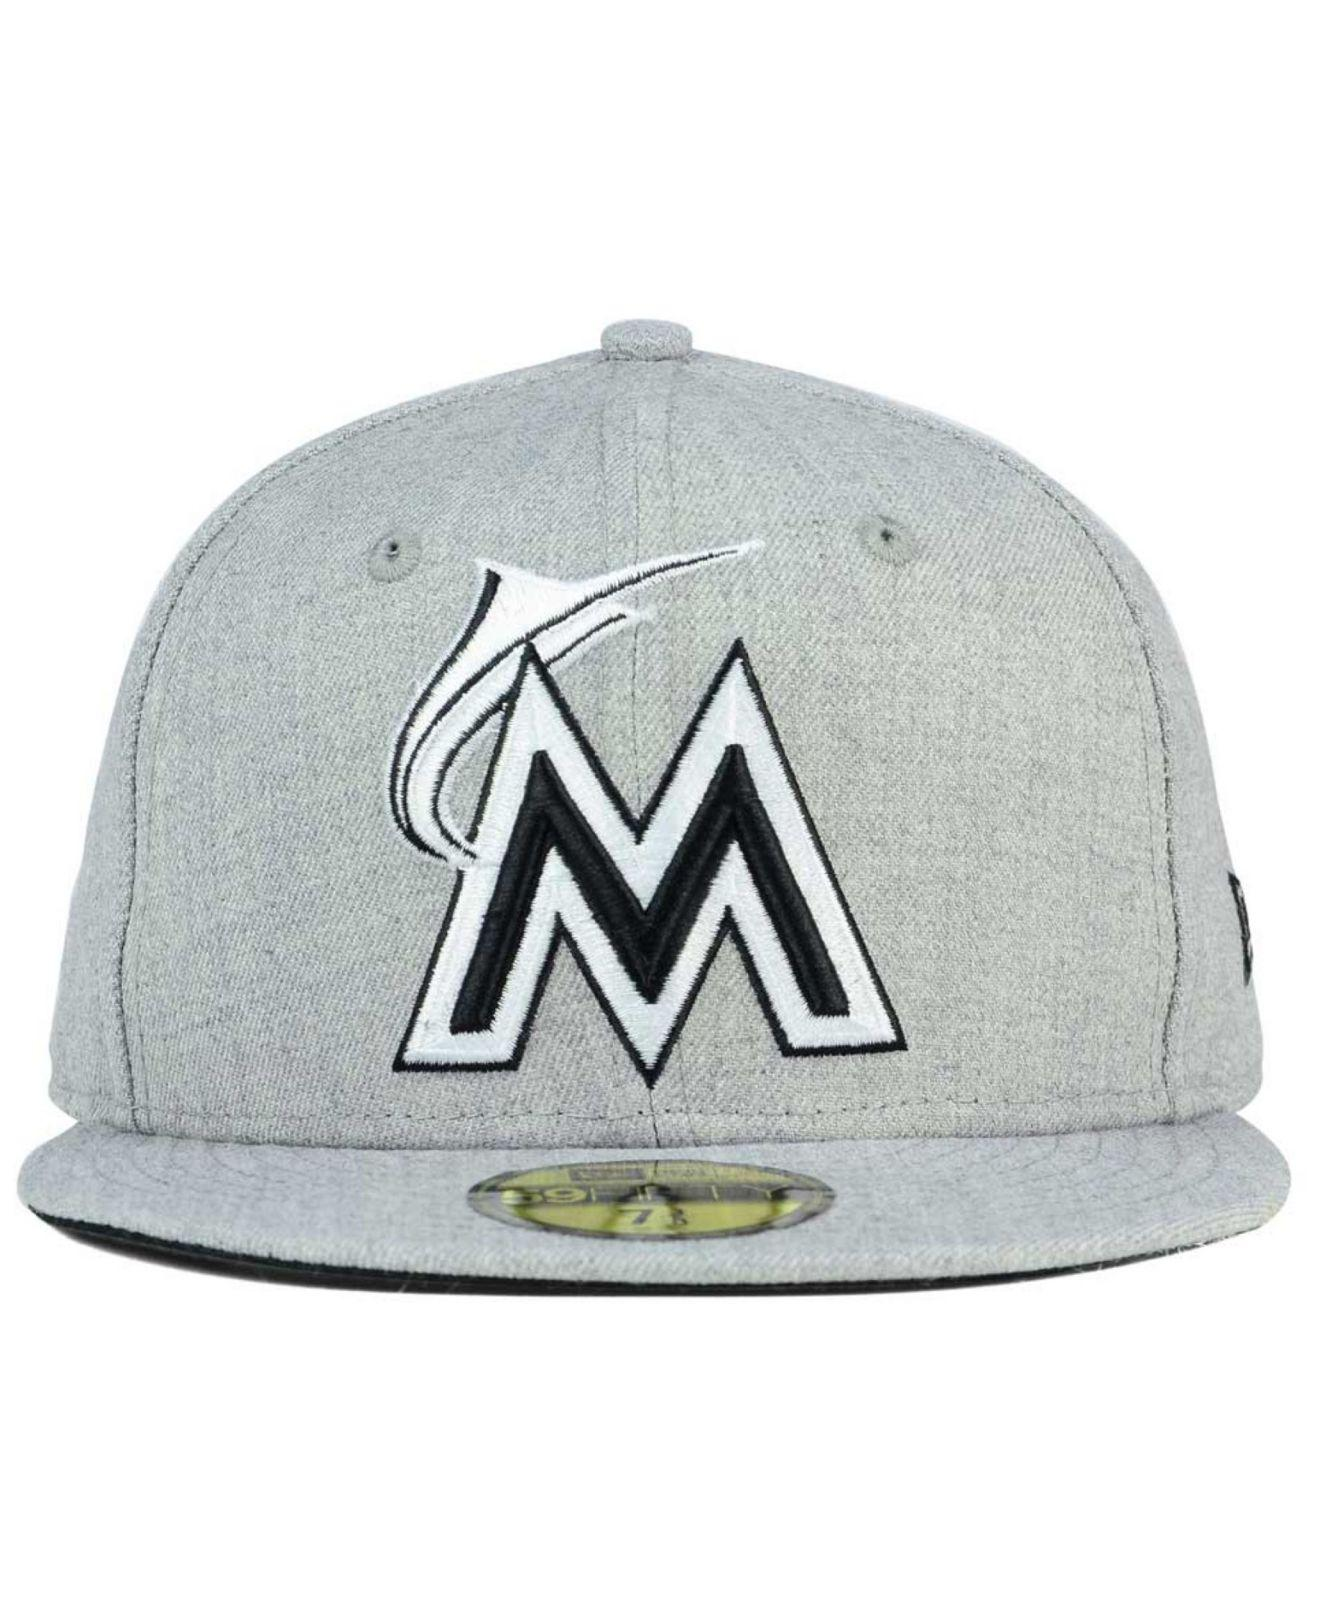 best sneakers 9e26a ed976 ... sale lyst ktz miami marlins heather black white 59fifty fitted cap in  gray for men 96913